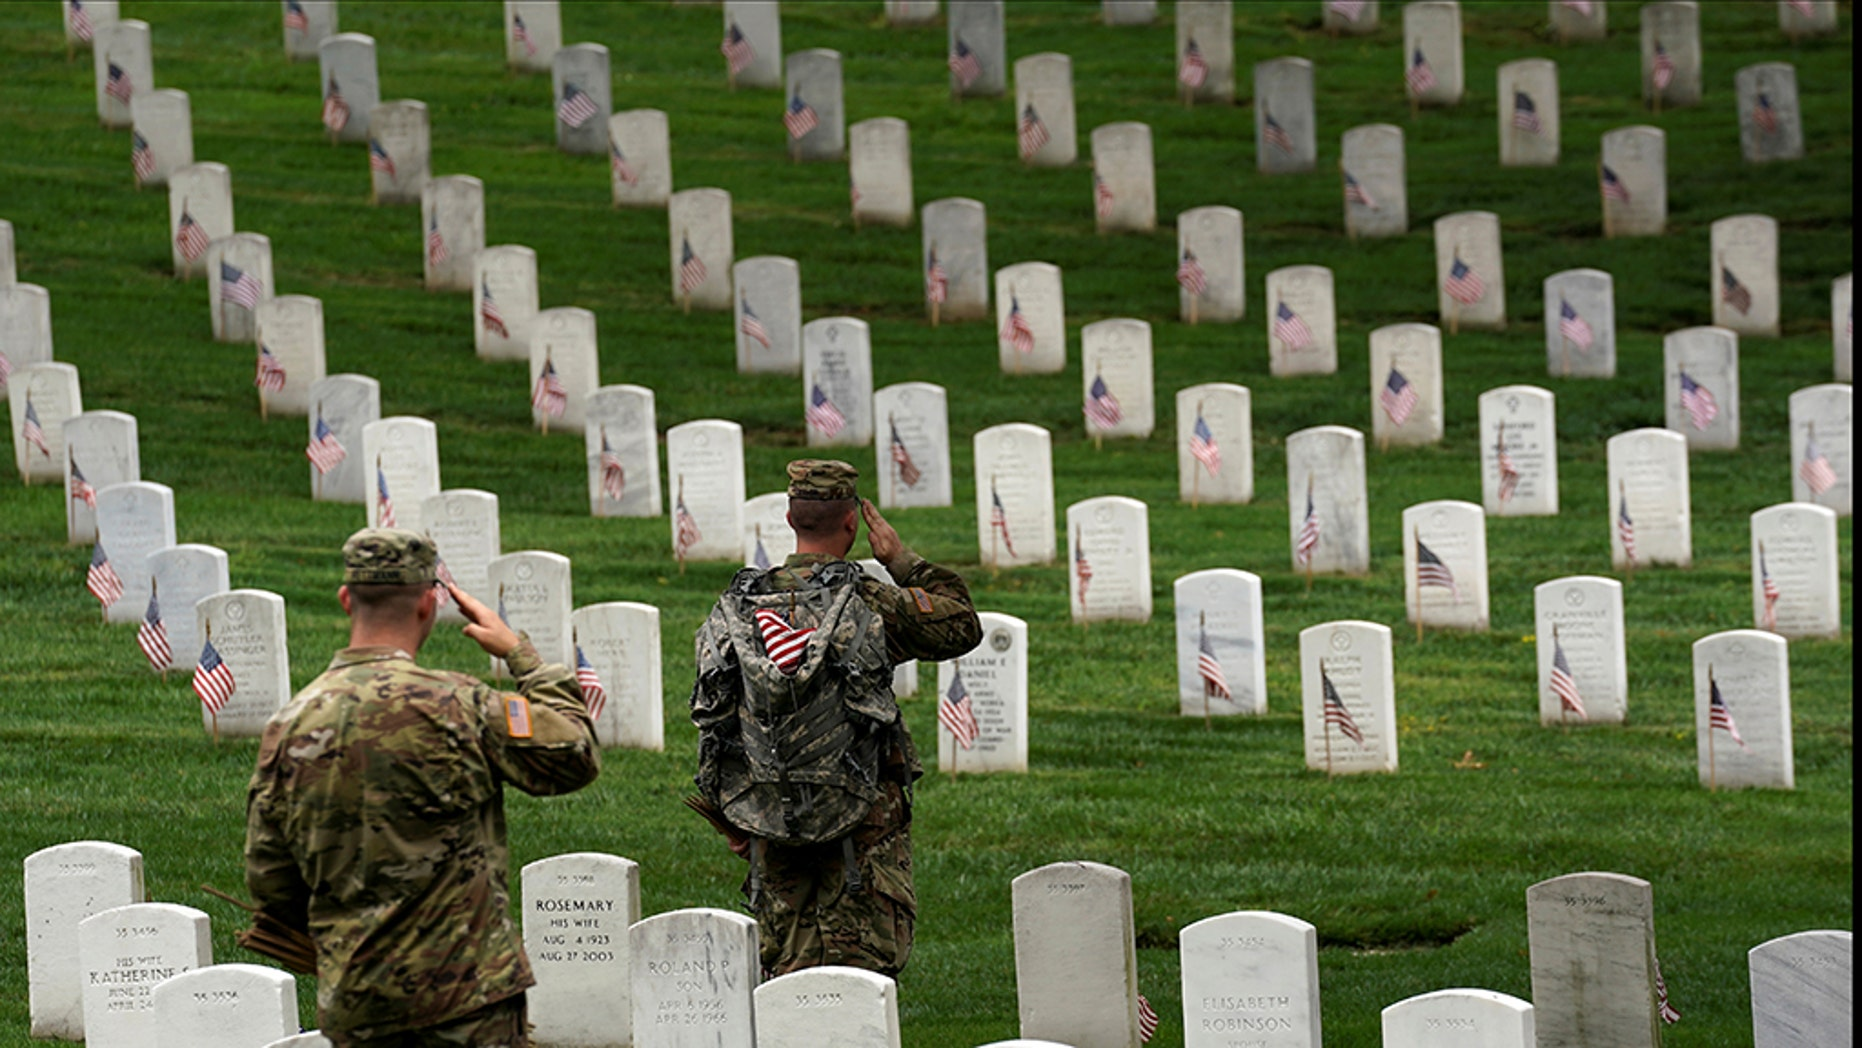 Arlington National Commentary may no longer be an active burial site as officials say that it will run out of space in approximately 23 years.